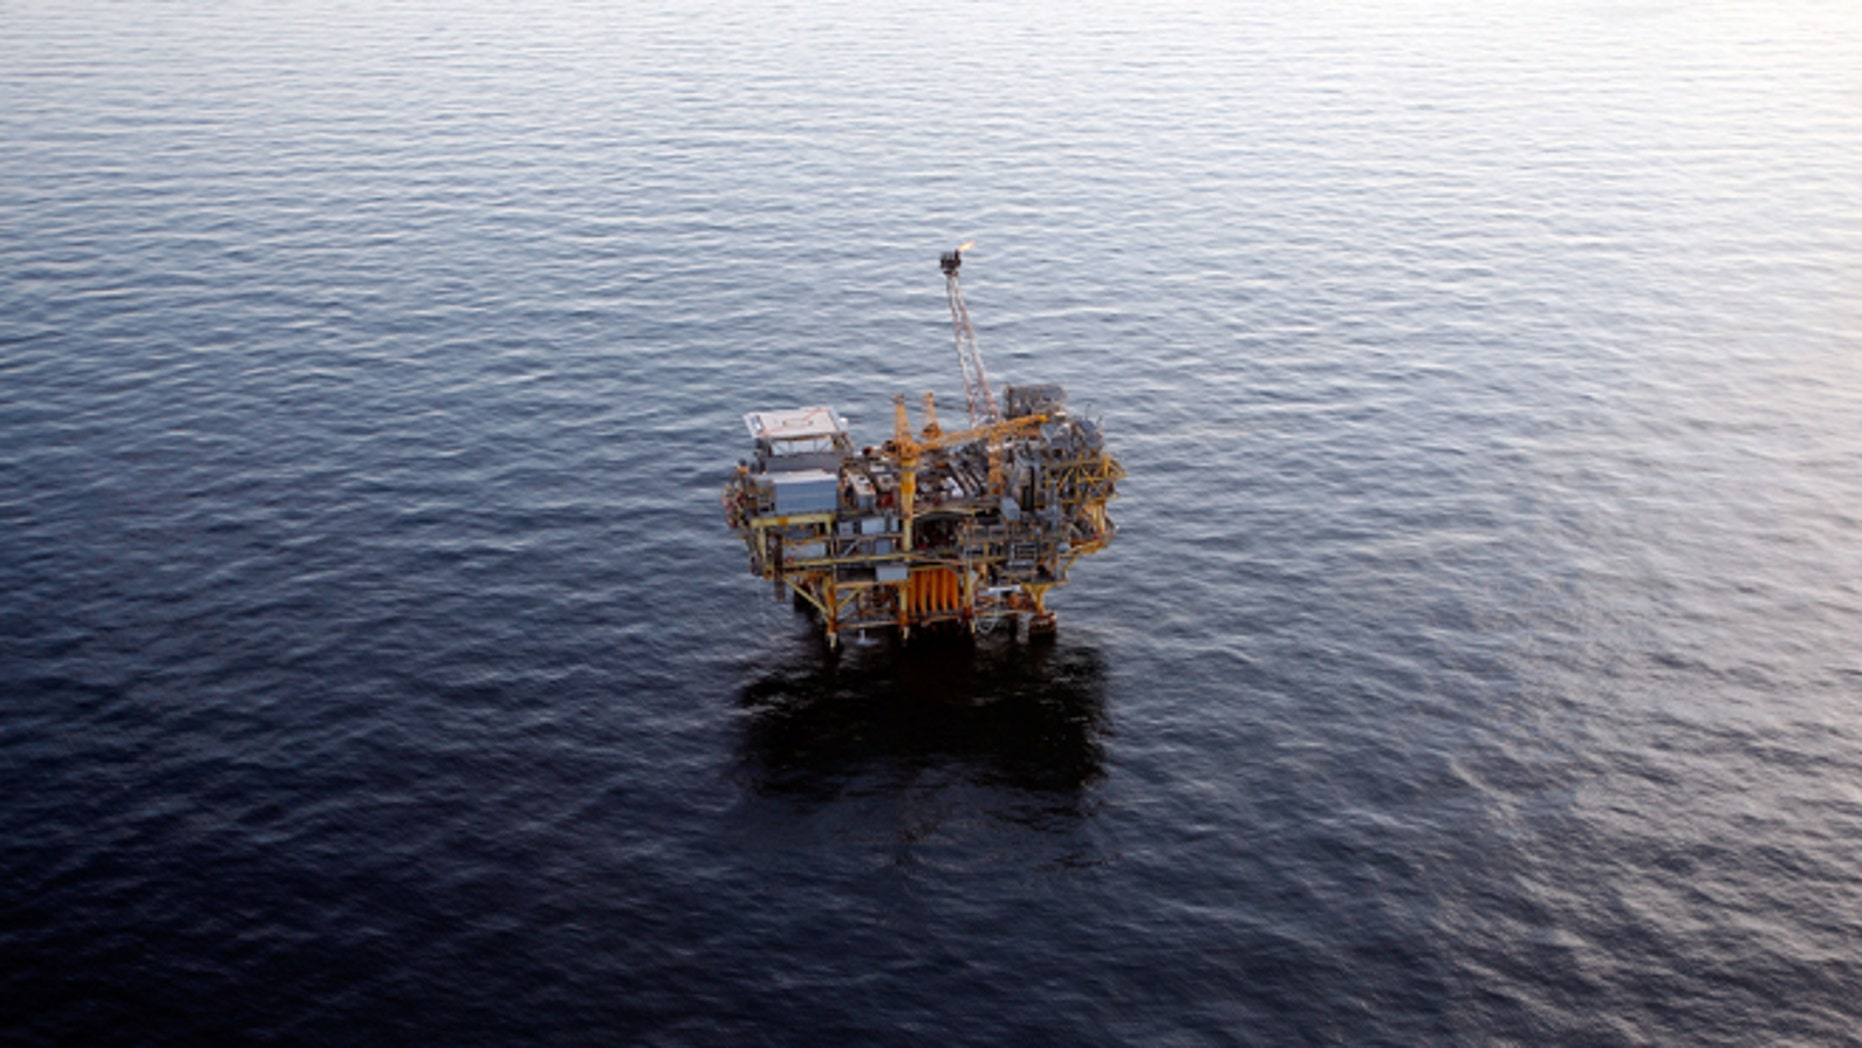 NEW ORLEANS - APRIL 28:  An oil rig near the Deepwater Horizon wellhead in the Gulf of Mexico on April 28, 2010 near New Orleans, Louisiana.  An estimated leak of 1,000-5,000 barrels of oil a day are still leaking into the gulf.  (Photo by Chris Graythen/Getty Images)